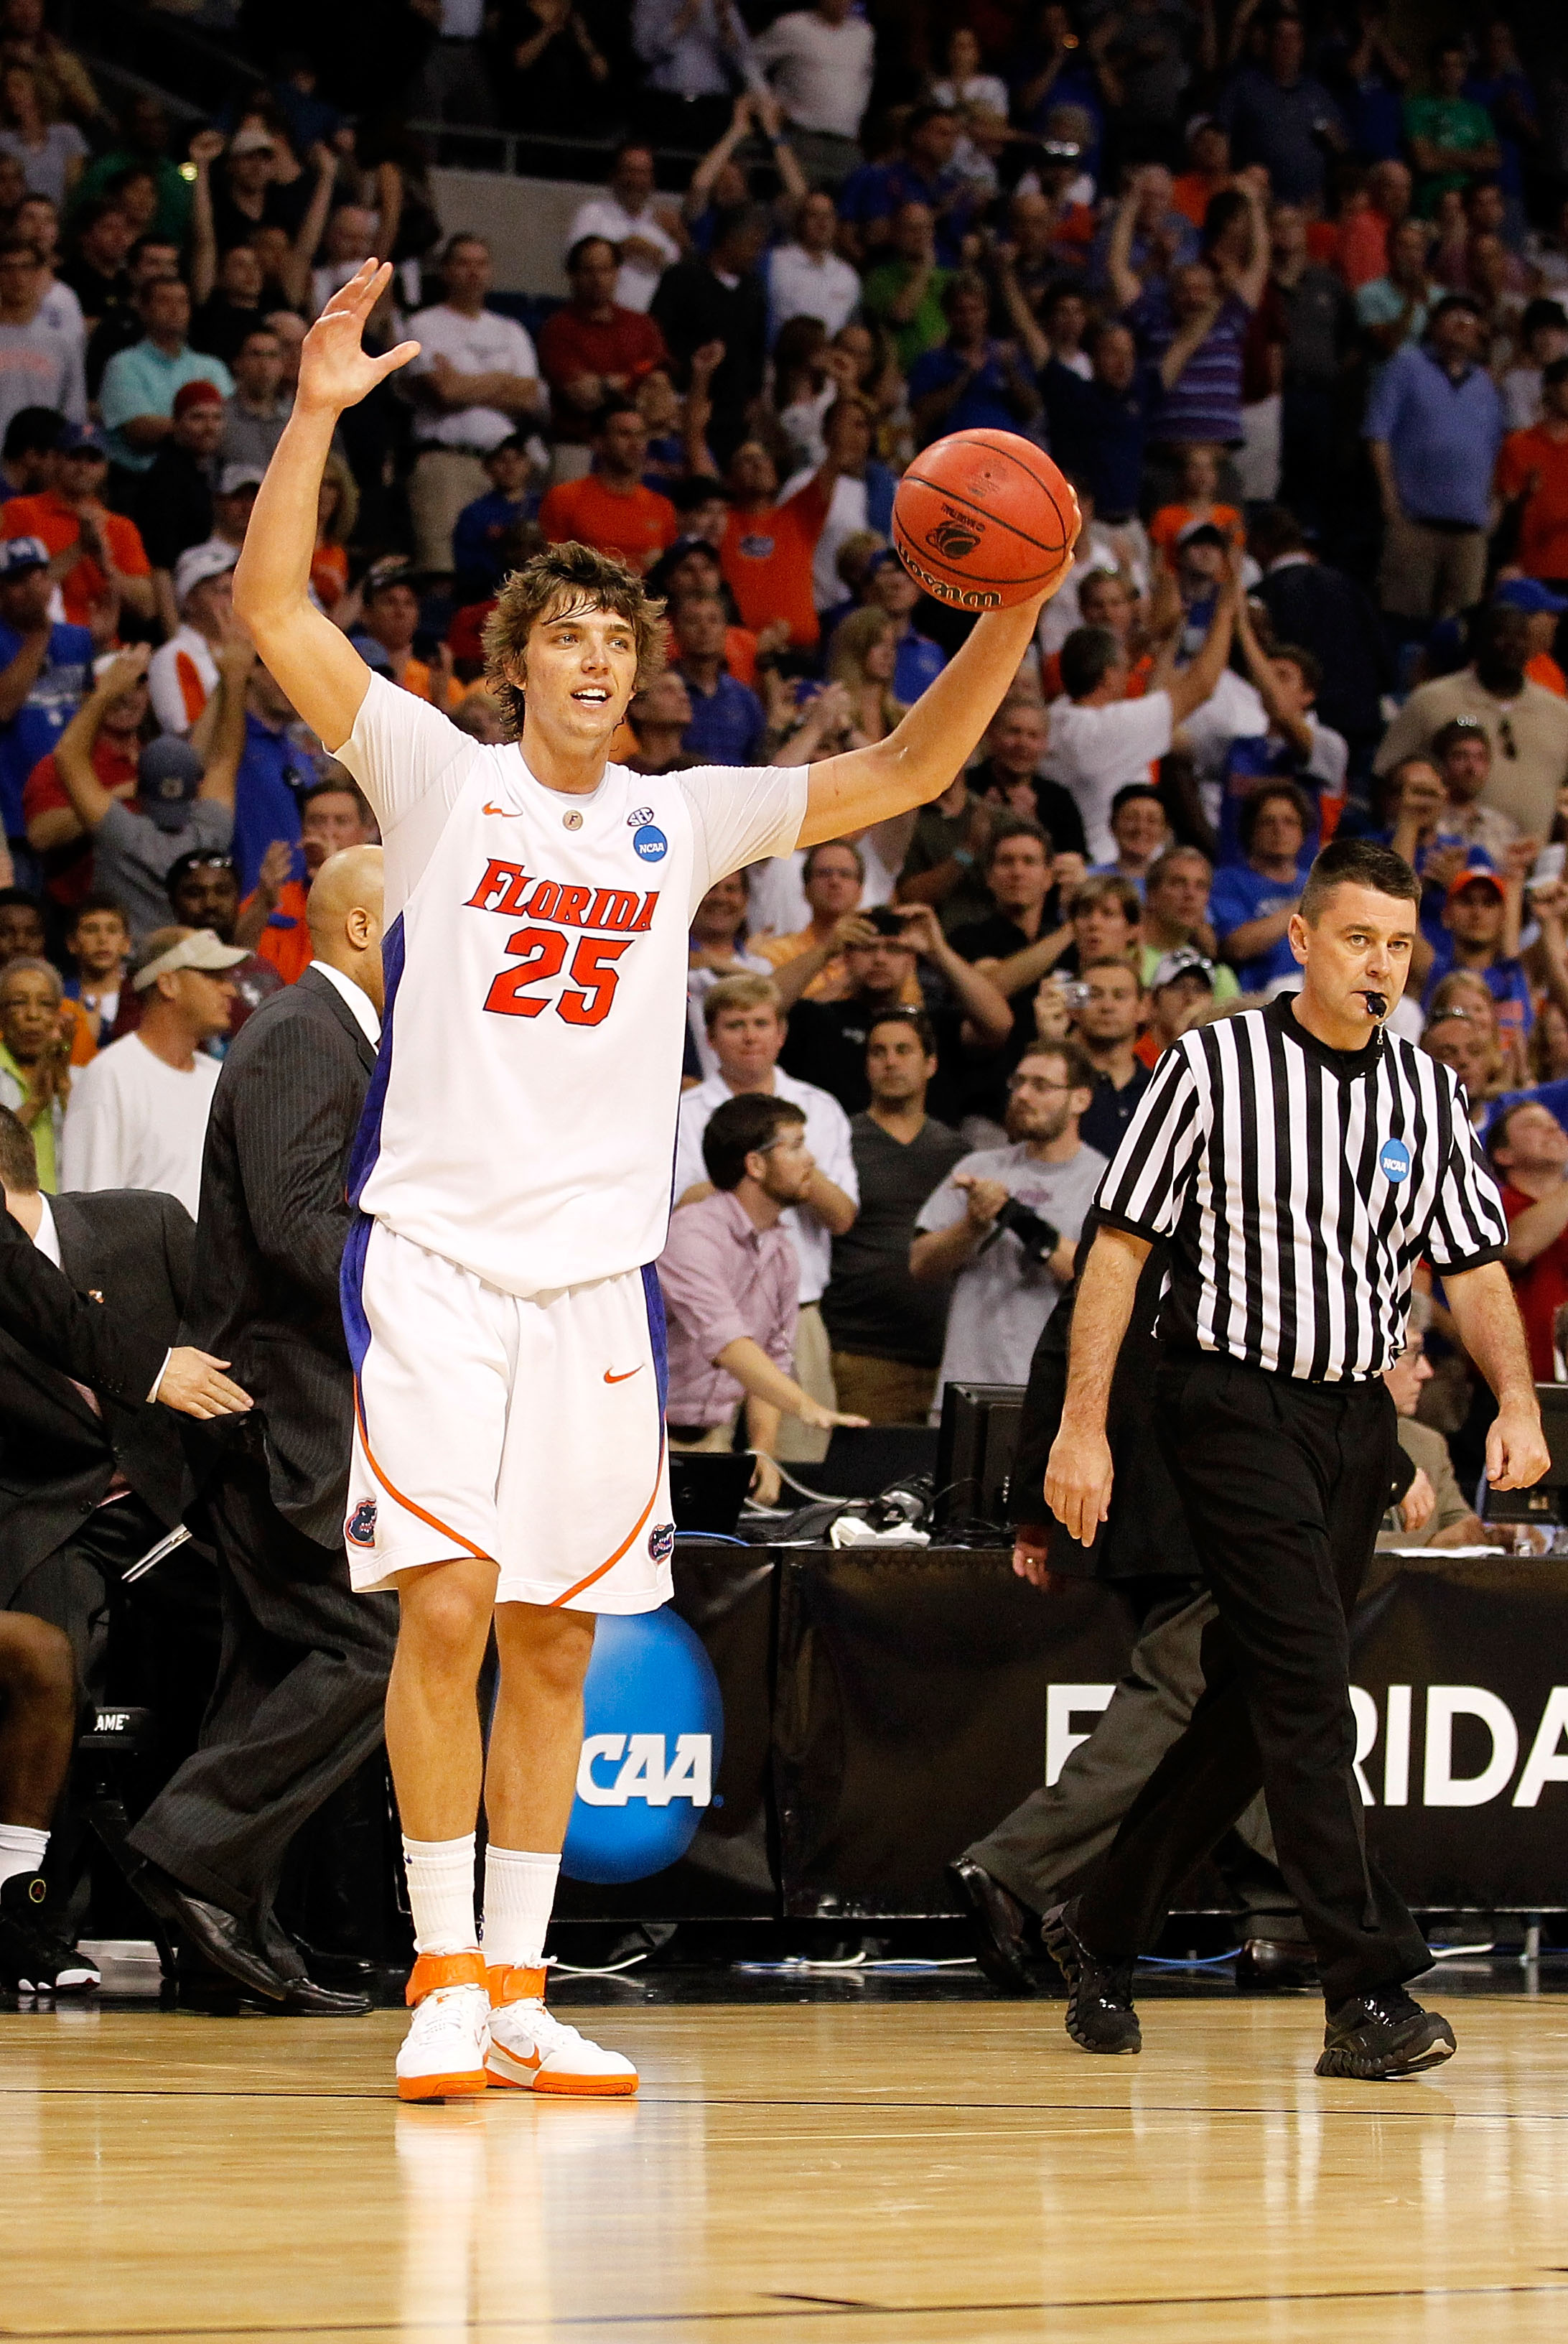 TAMPA, FL - MARCH 19:  Chandler Parsons #25 of the Florida Gators celebrates after Flordia won 73-65 against the UCLA Bruins during the third round of the 2011 NCAA men's basketball tournament at St. Pete Times Forum on March 19, 2011 in Tampa, Florida.